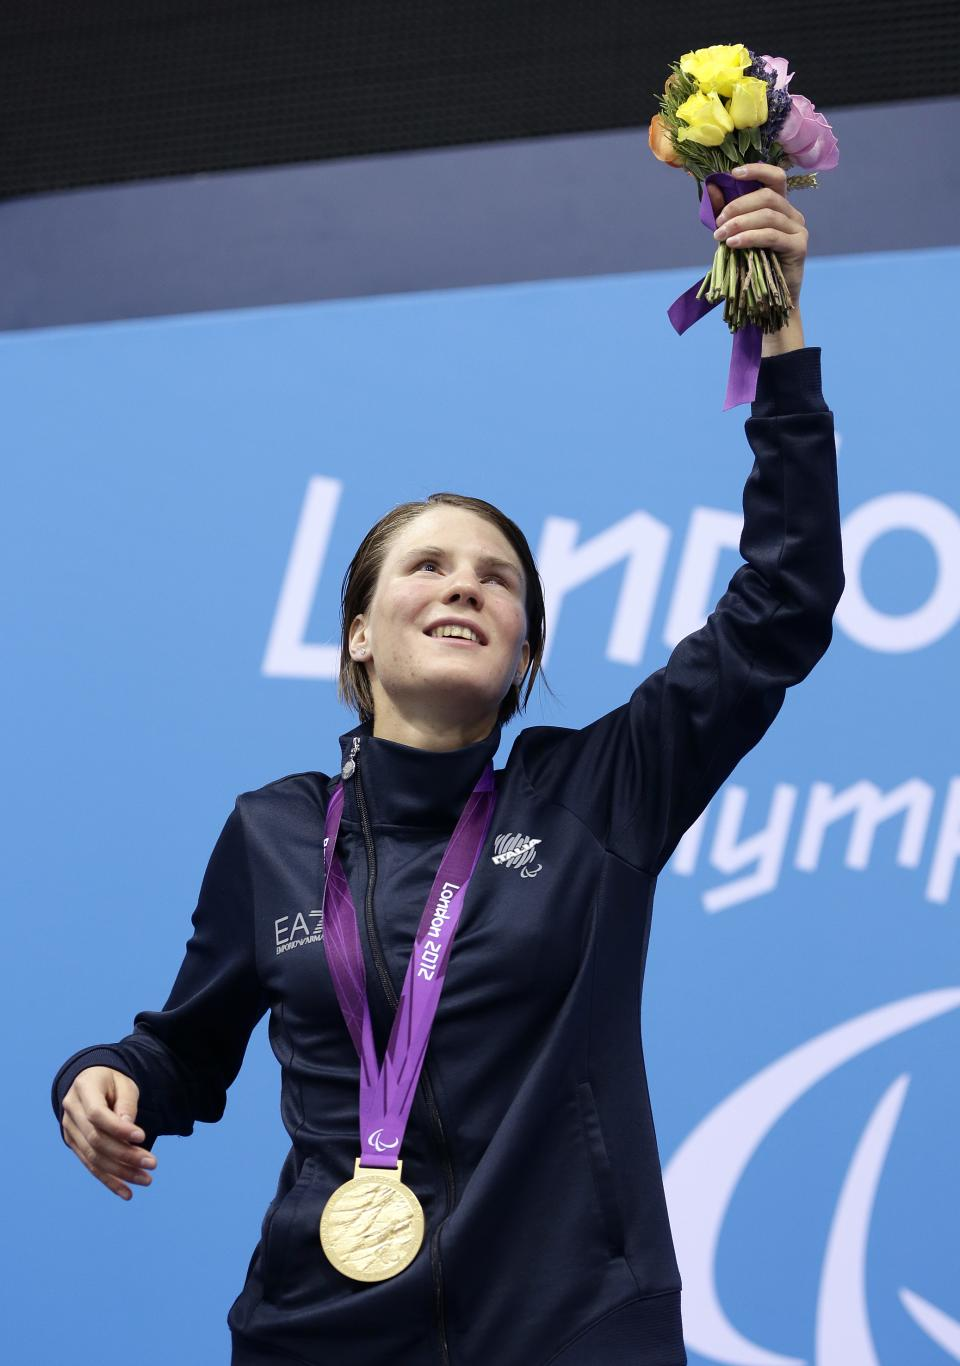 Cecilia Camellini celebrates her gold medal for the women's 50-meter freestyle S11 at the 2012 Paralympics games, Saturday, Sept. 1, 2012, in London. (AP Photo/Alastair Grant)